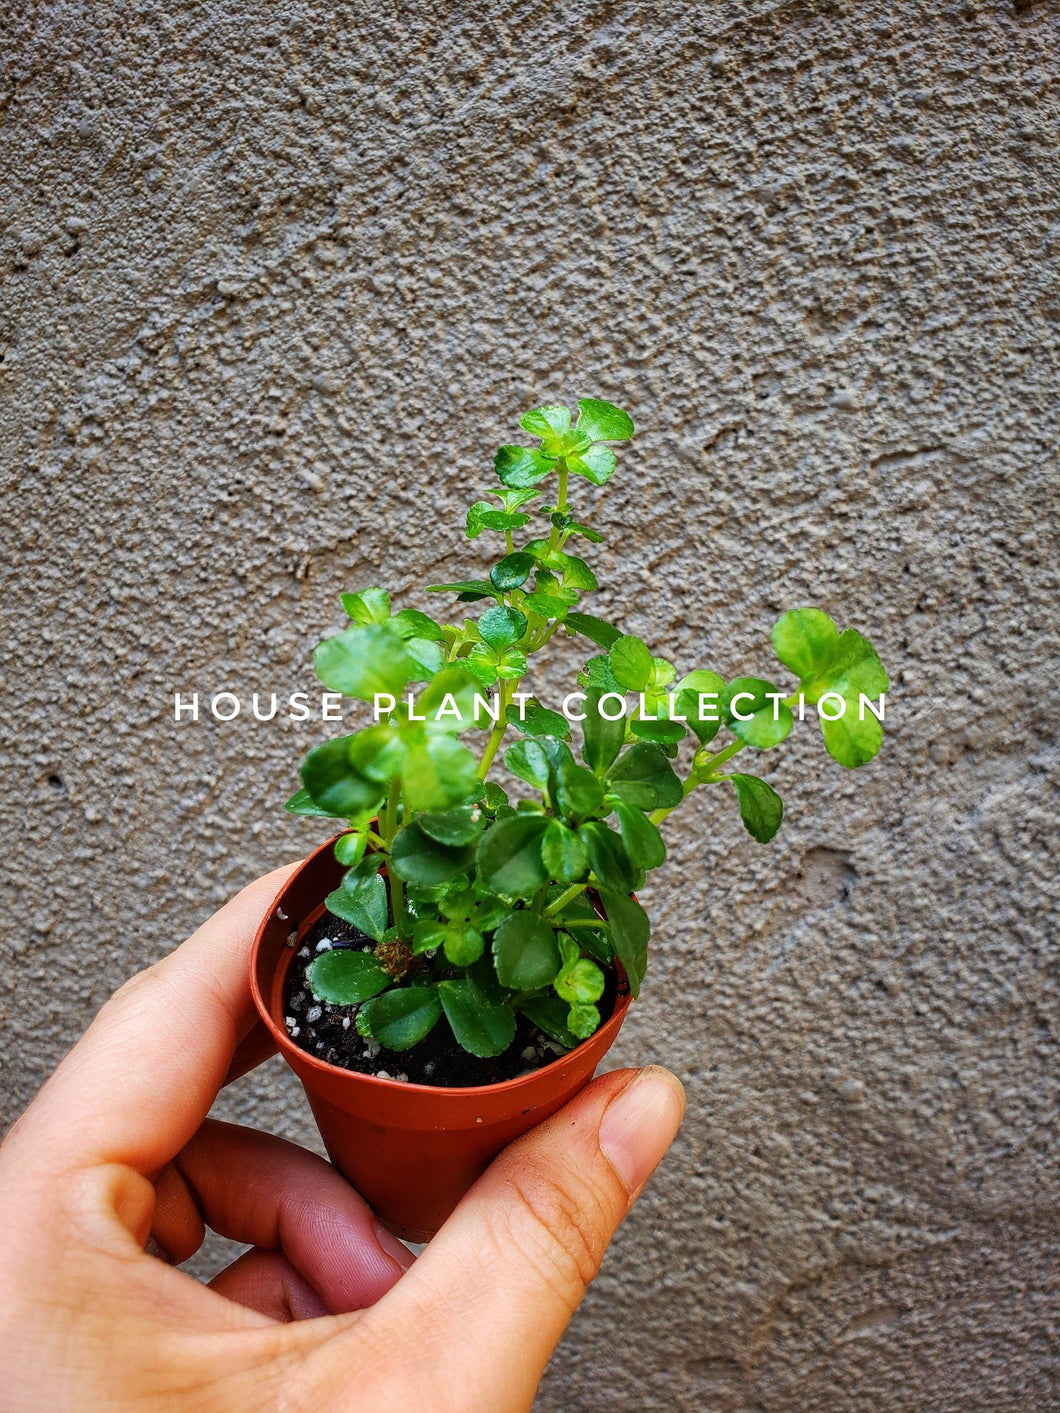 Hemianthus callitrichoides / Dwarf Baby Tears - Houseplant Collection